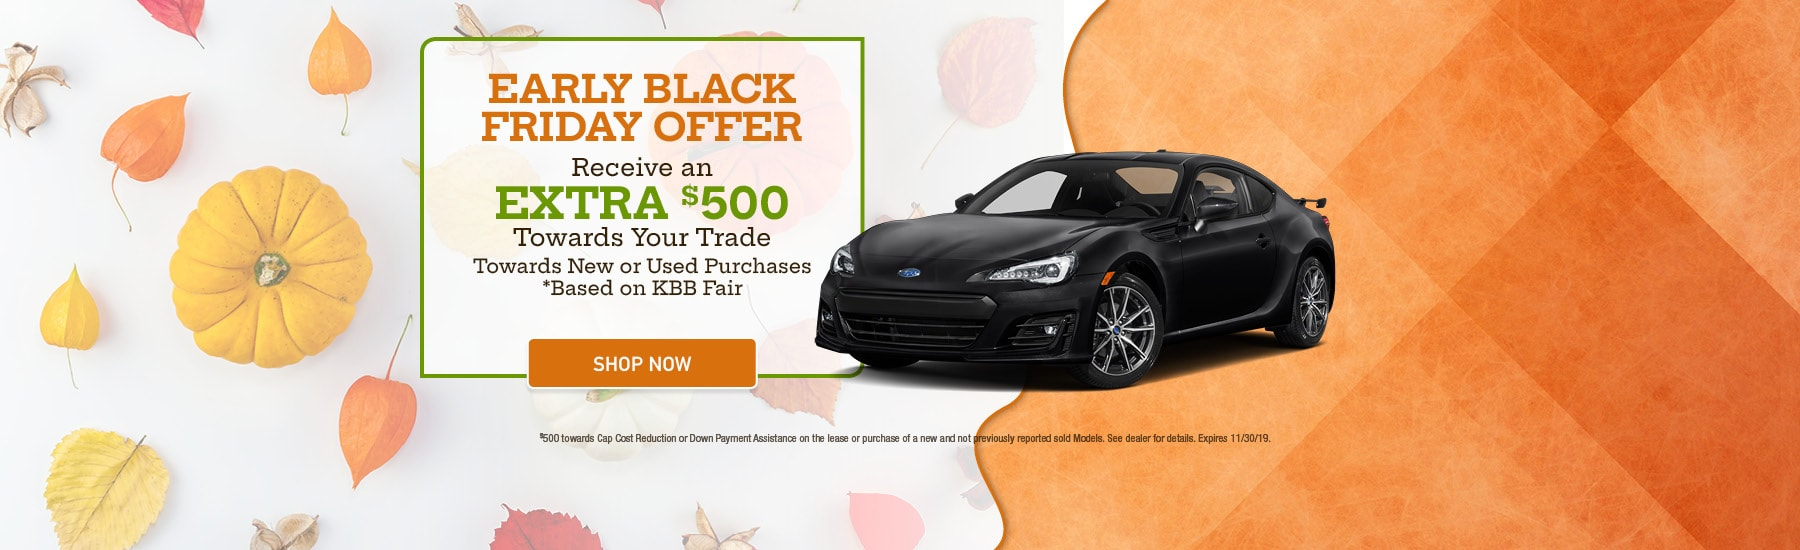 Car Dealerships That Pay Off Your Trade >> New Subaru Used Cars For Sale In Pittsburgh Subaru Of